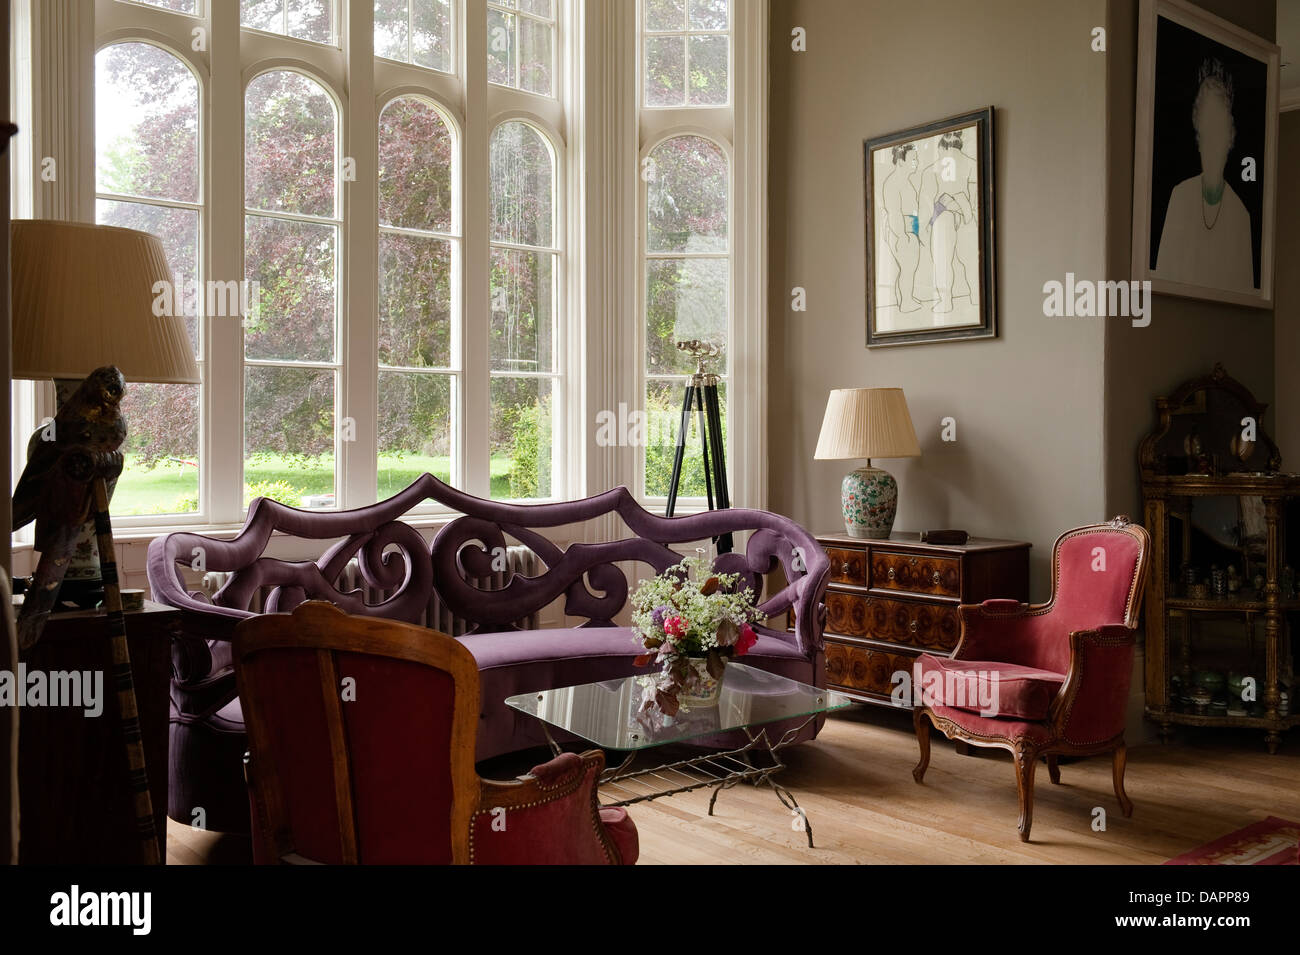 Admirable Ornate Sofa Set In Window Of Gloucestershire Country Estate Gmtry Best Dining Table And Chair Ideas Images Gmtryco